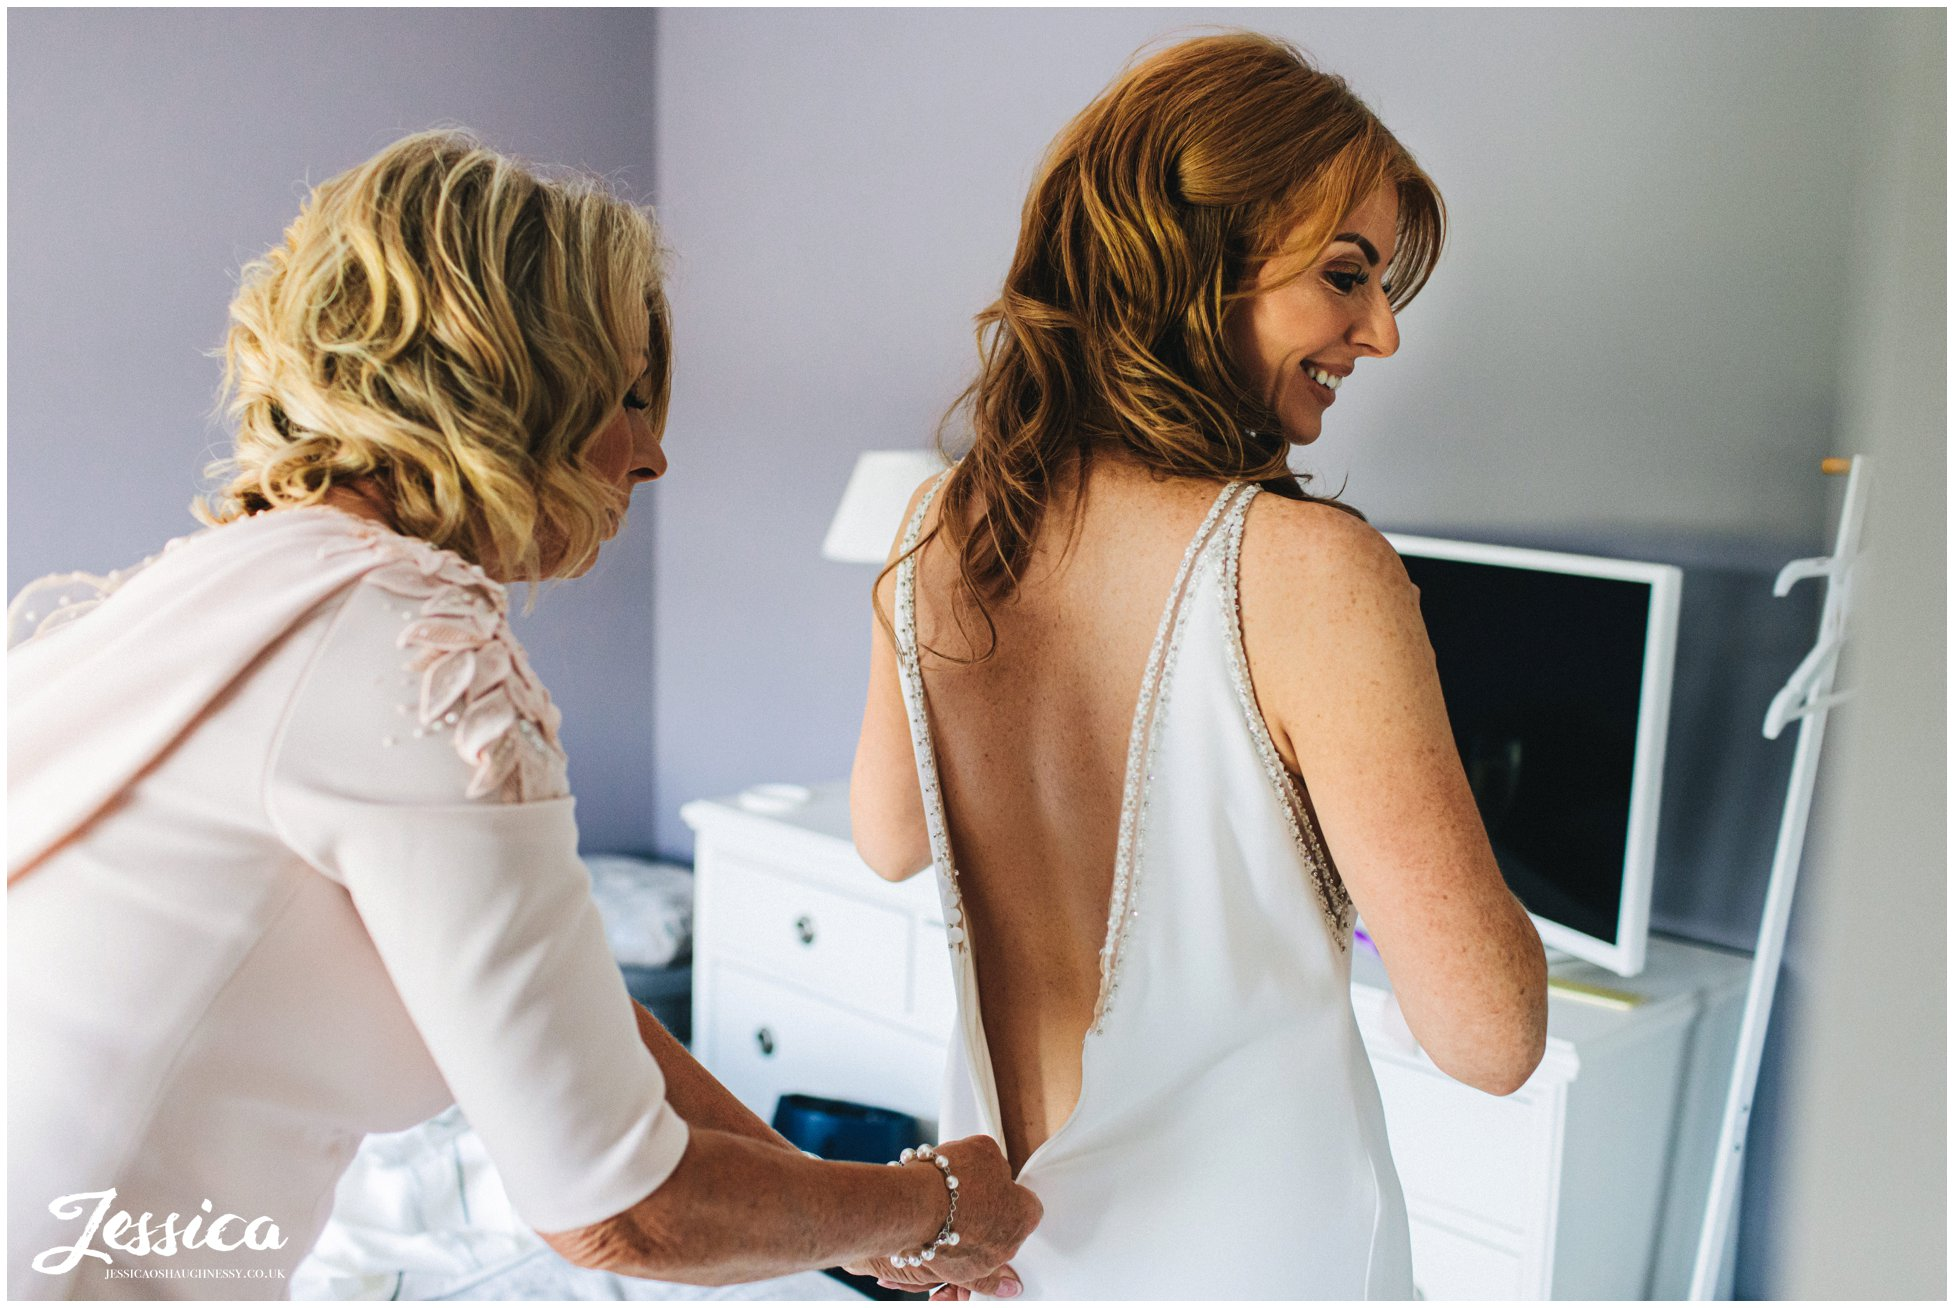 mother of the bride helps daughter into wedding dress